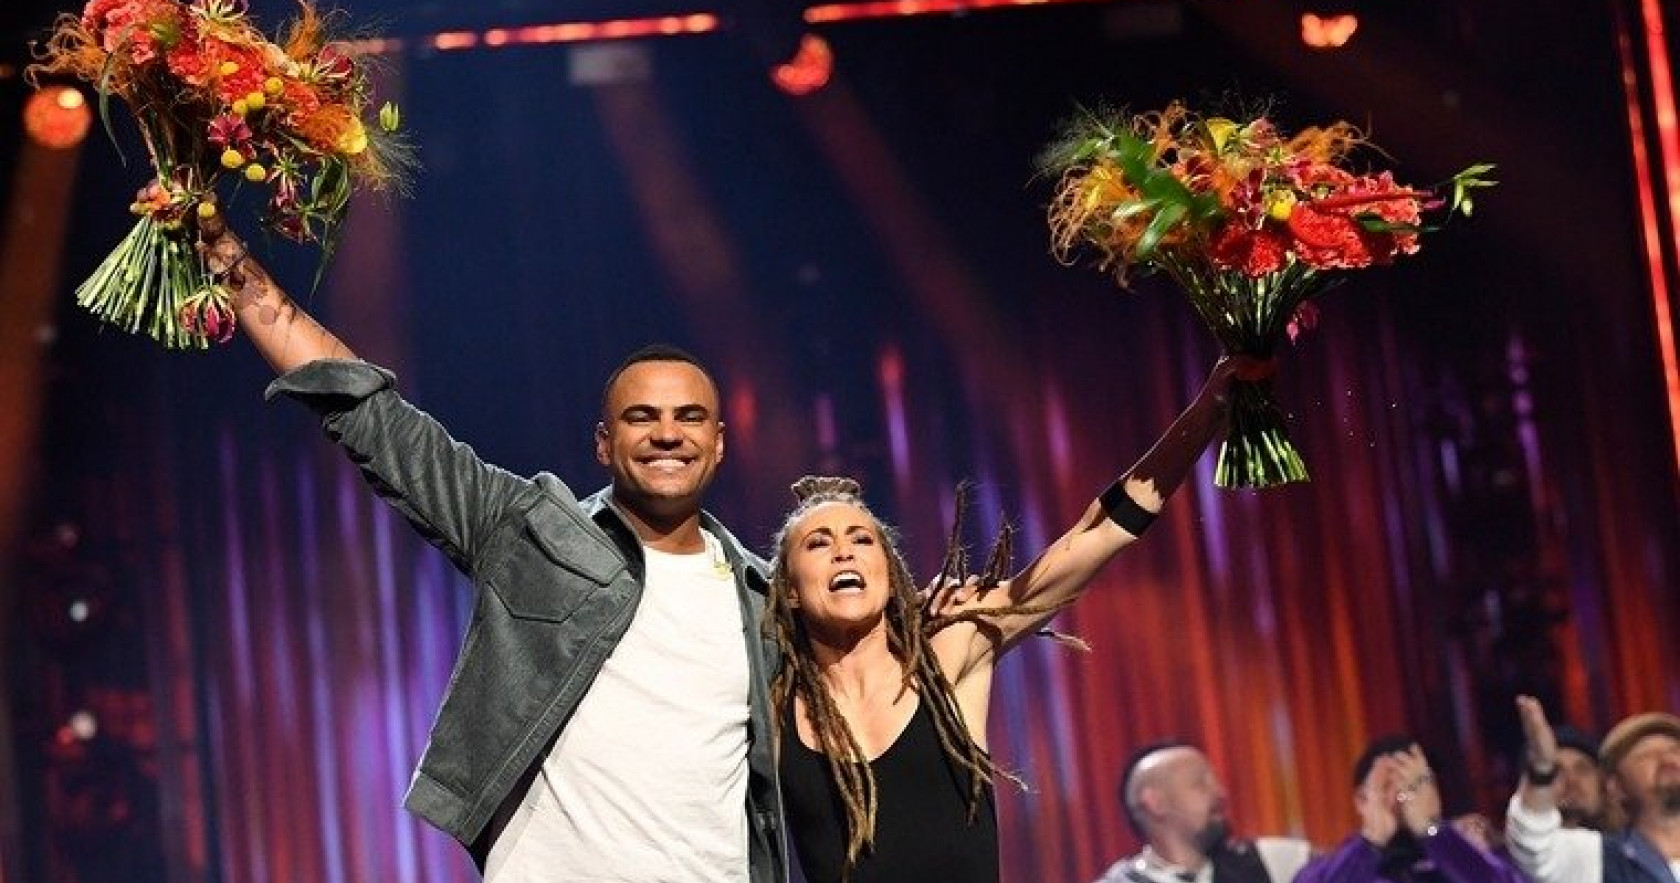 Mohombi and Mariette, finalists in Melodifestivalen